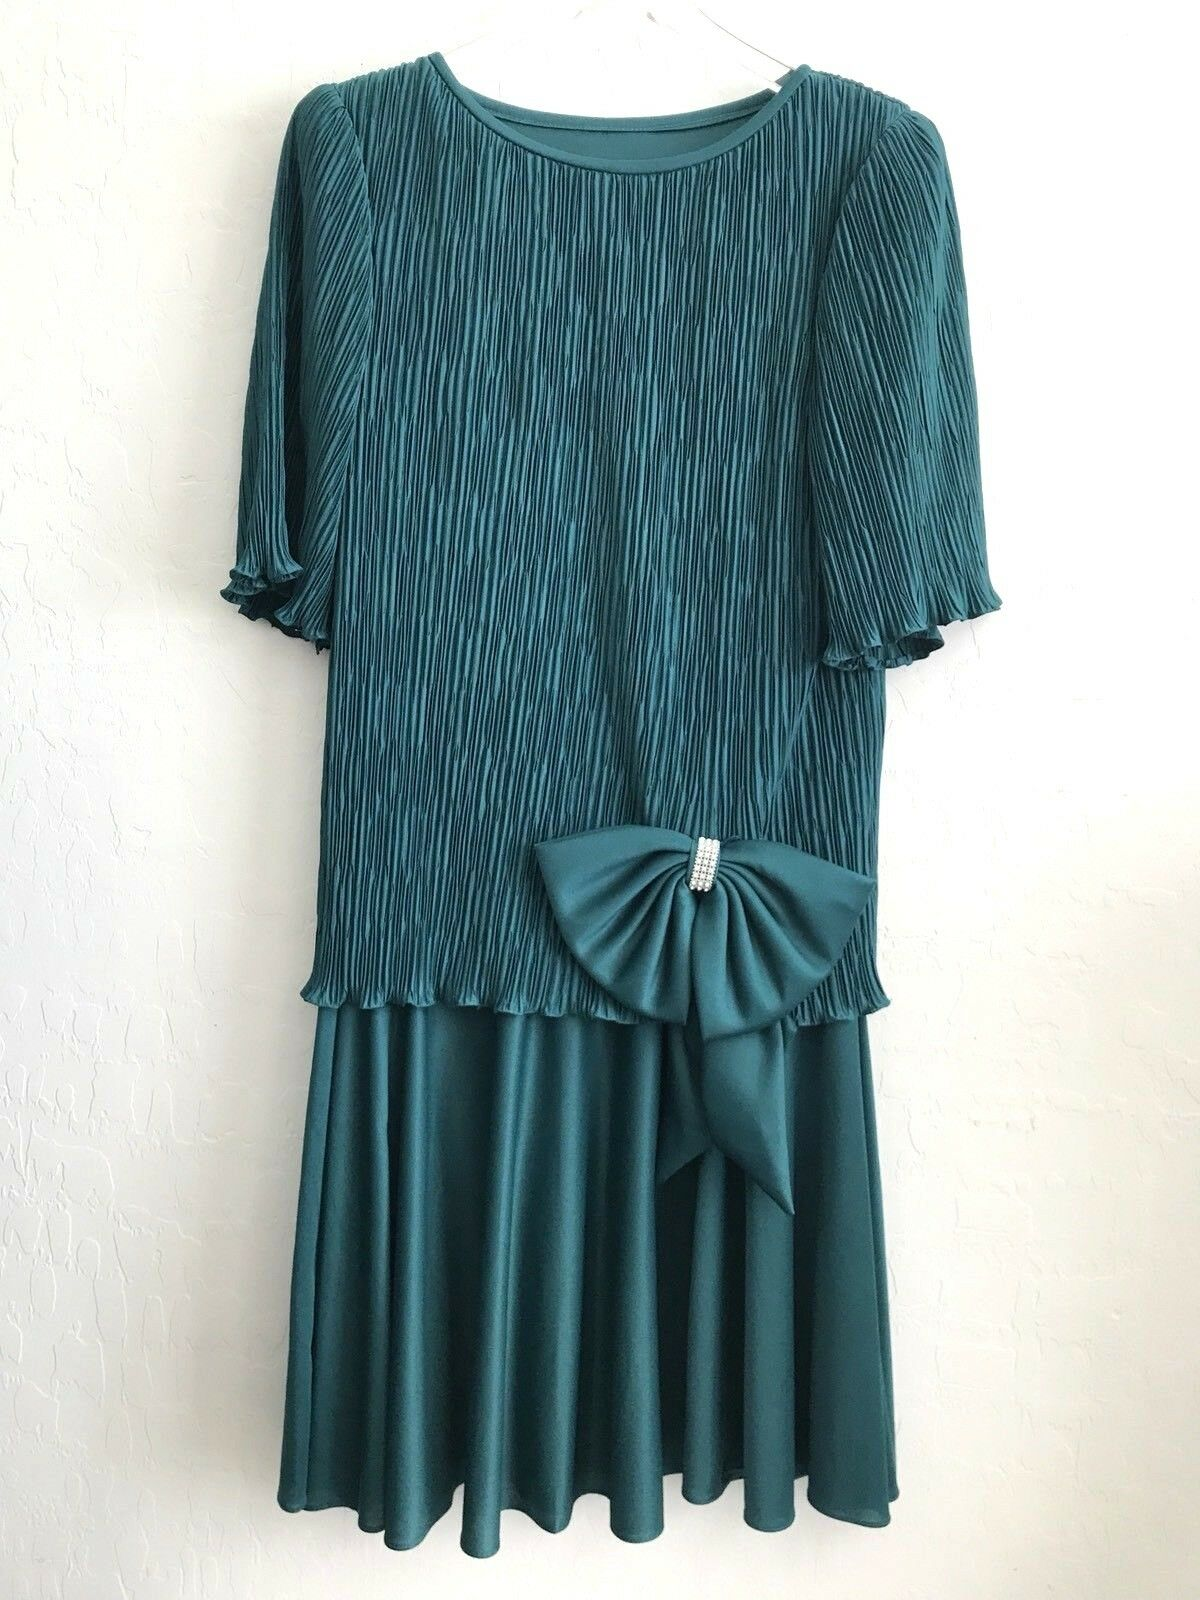 Vintage After Dark Women's - Green Pleated Top w  Flared Skirt + Bow - Size 8